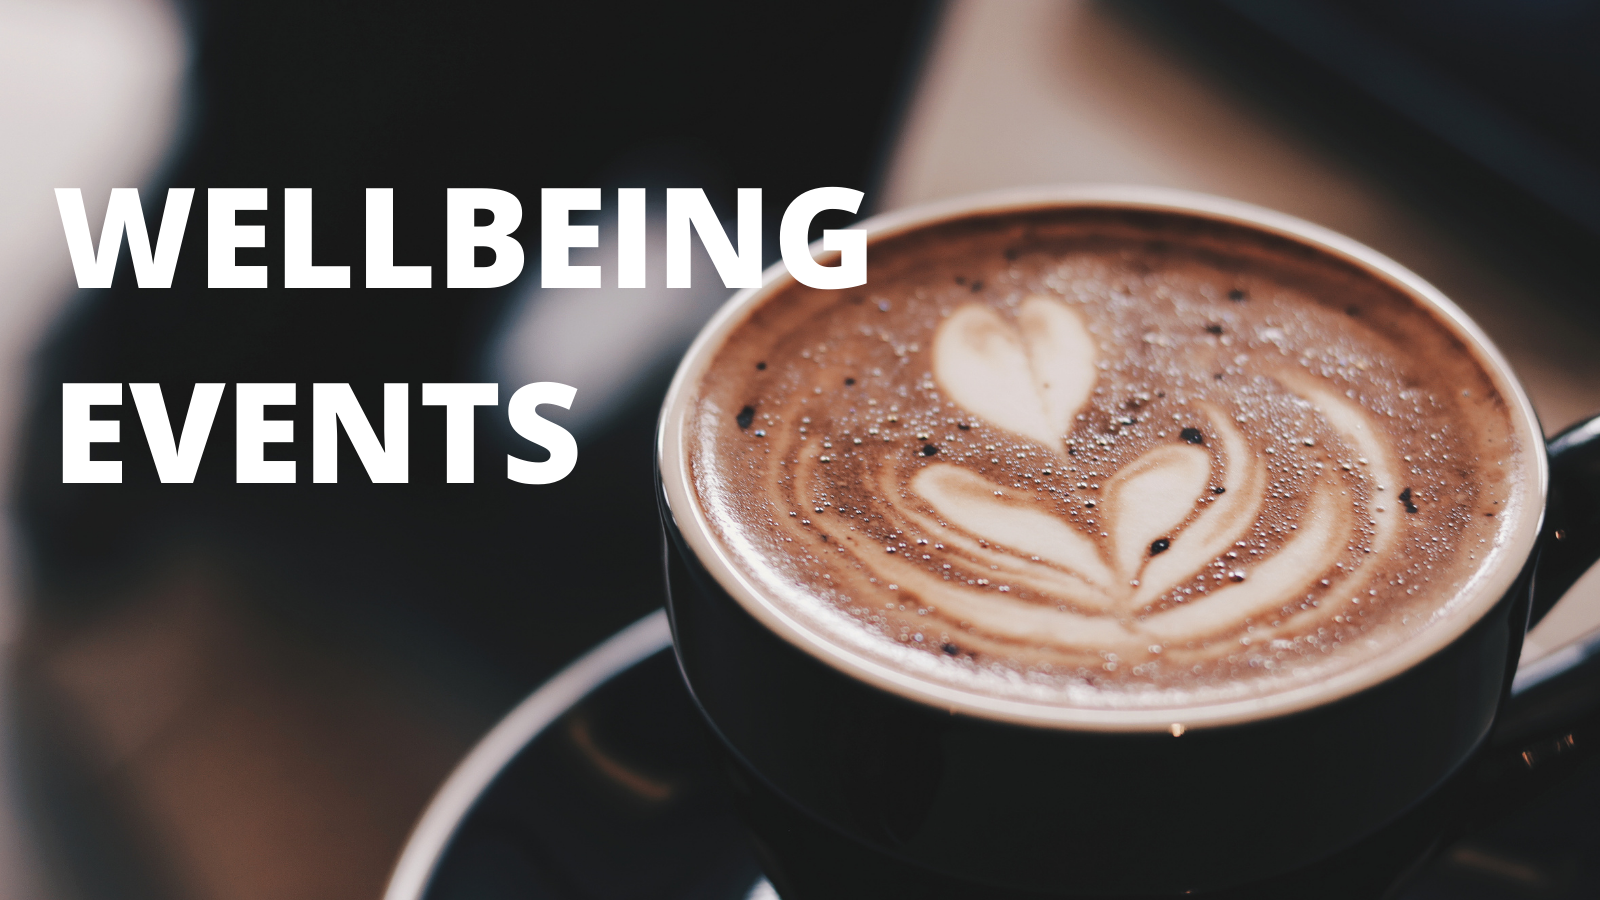 Wellbeing Events